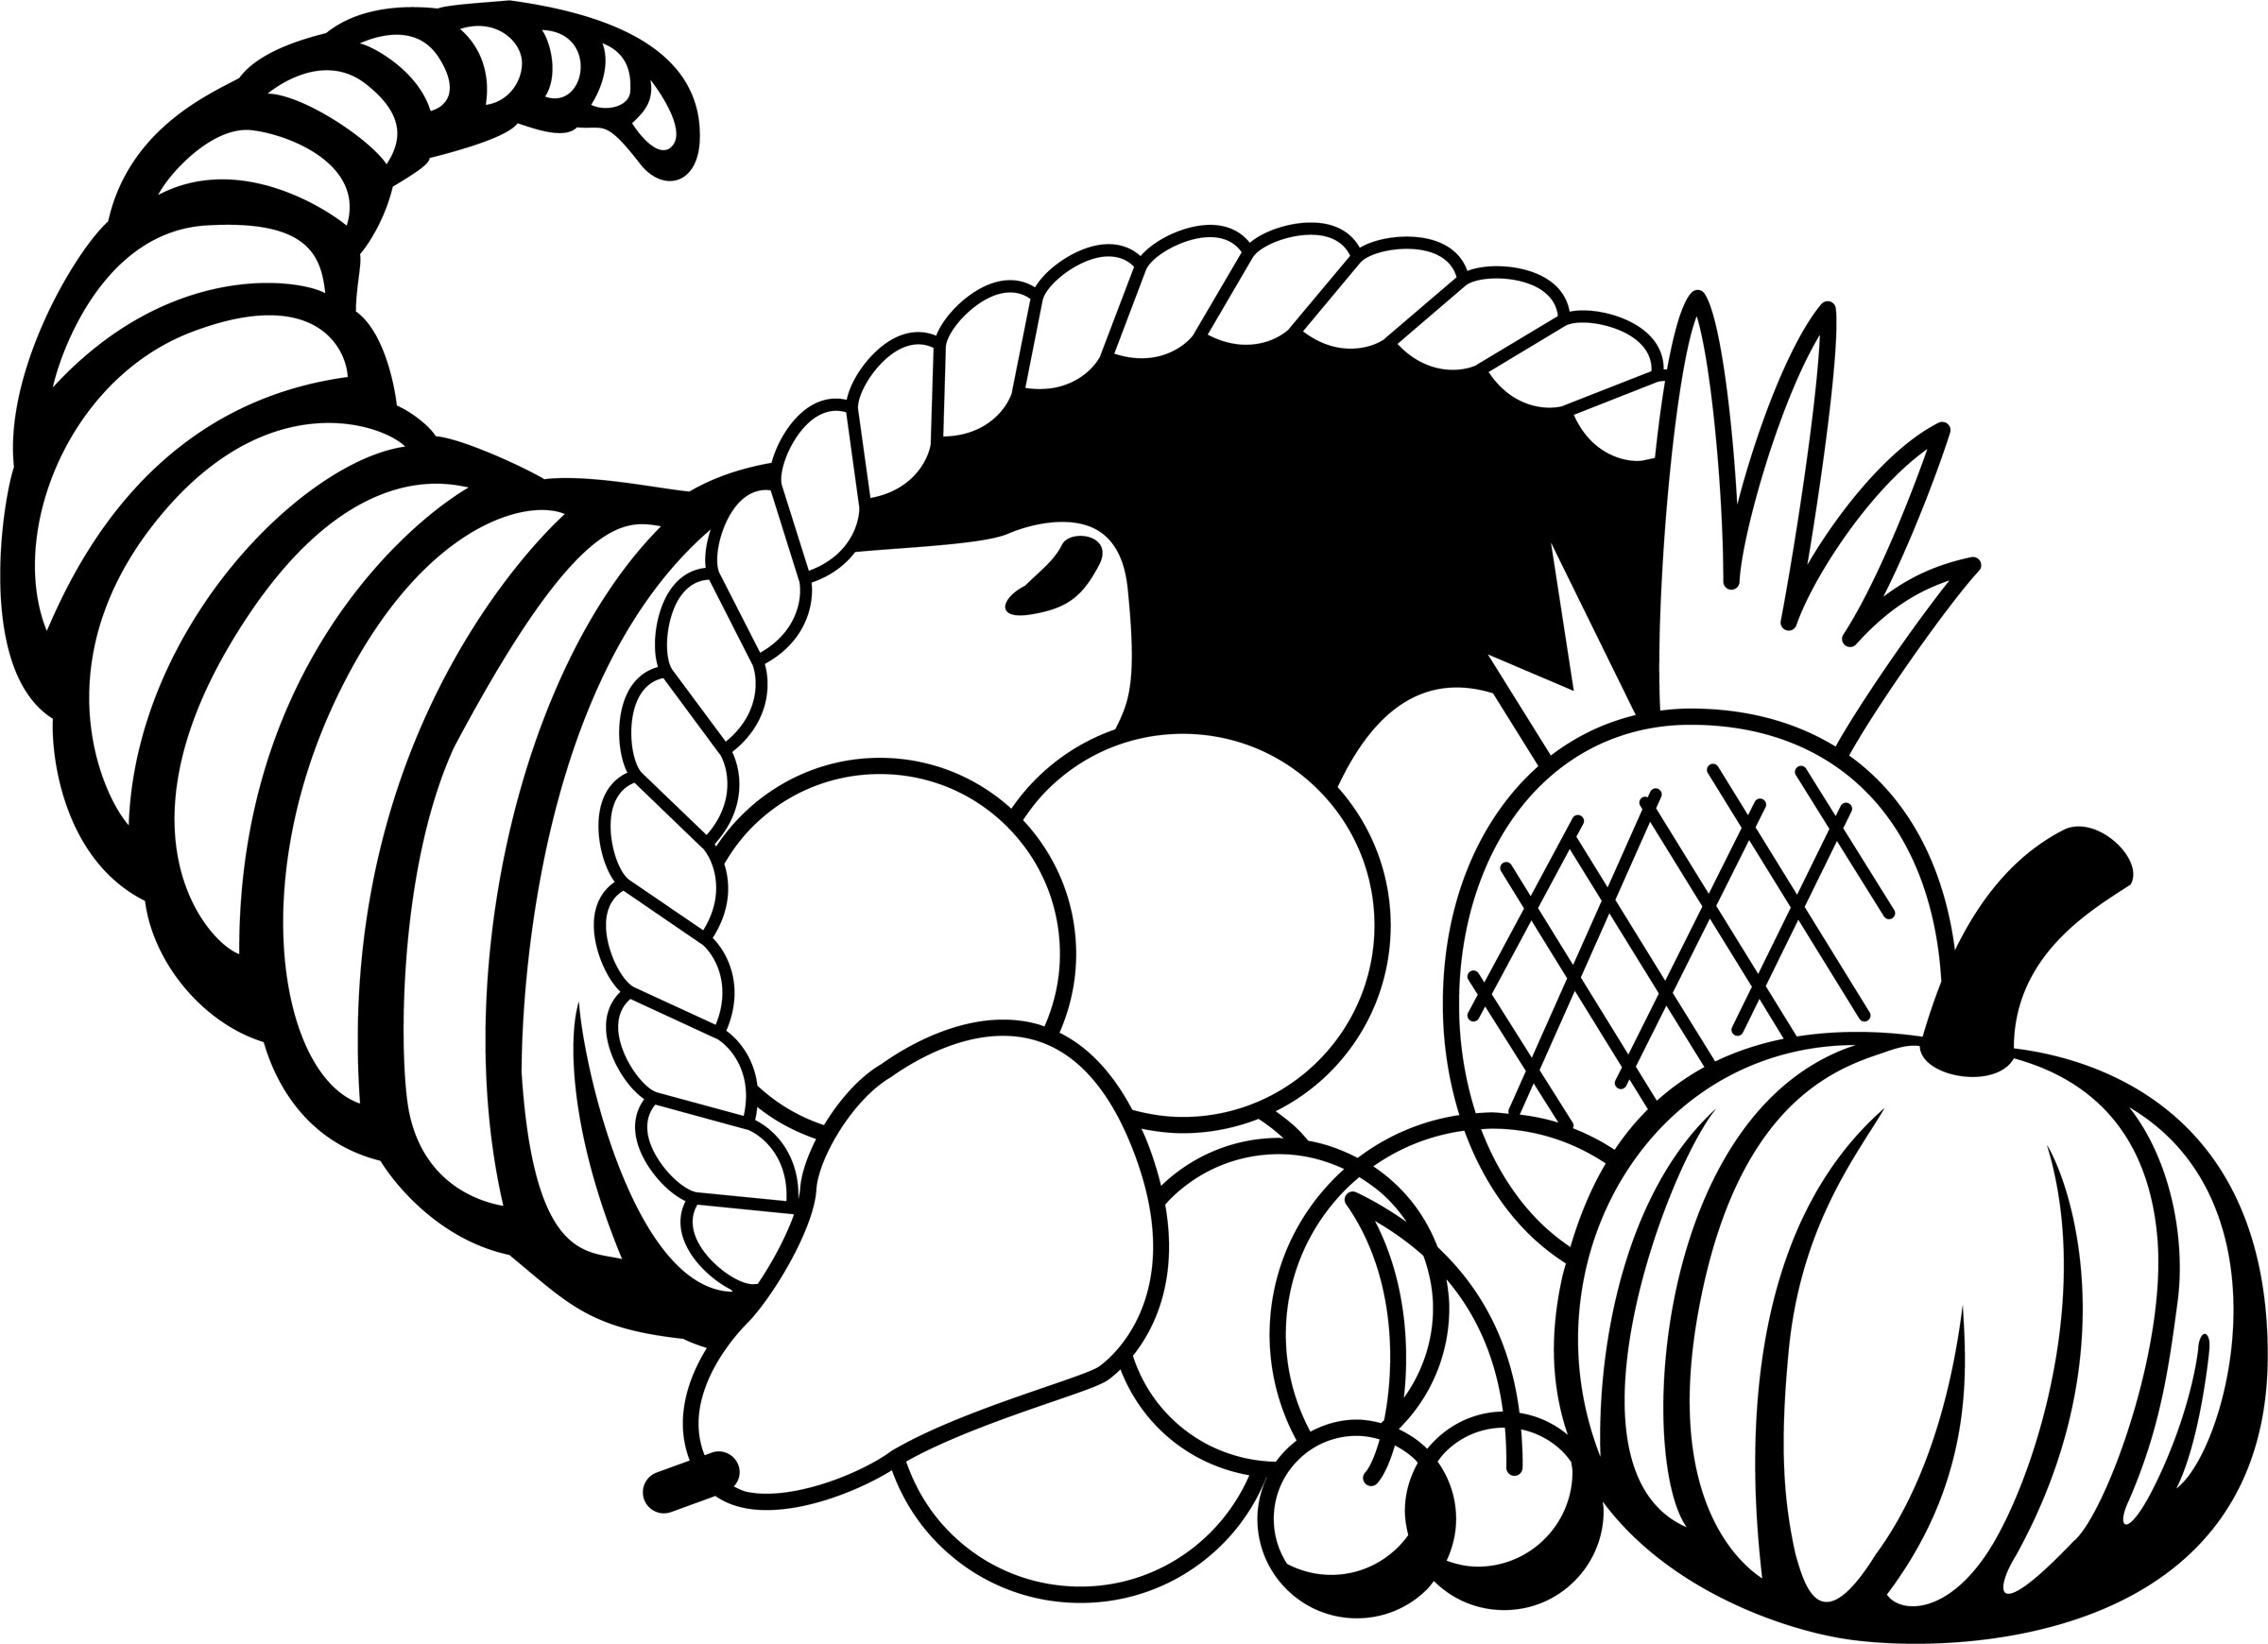 picture of cornucopia to color cornucopia coloring pages to download and print for free picture cornucopia to of color